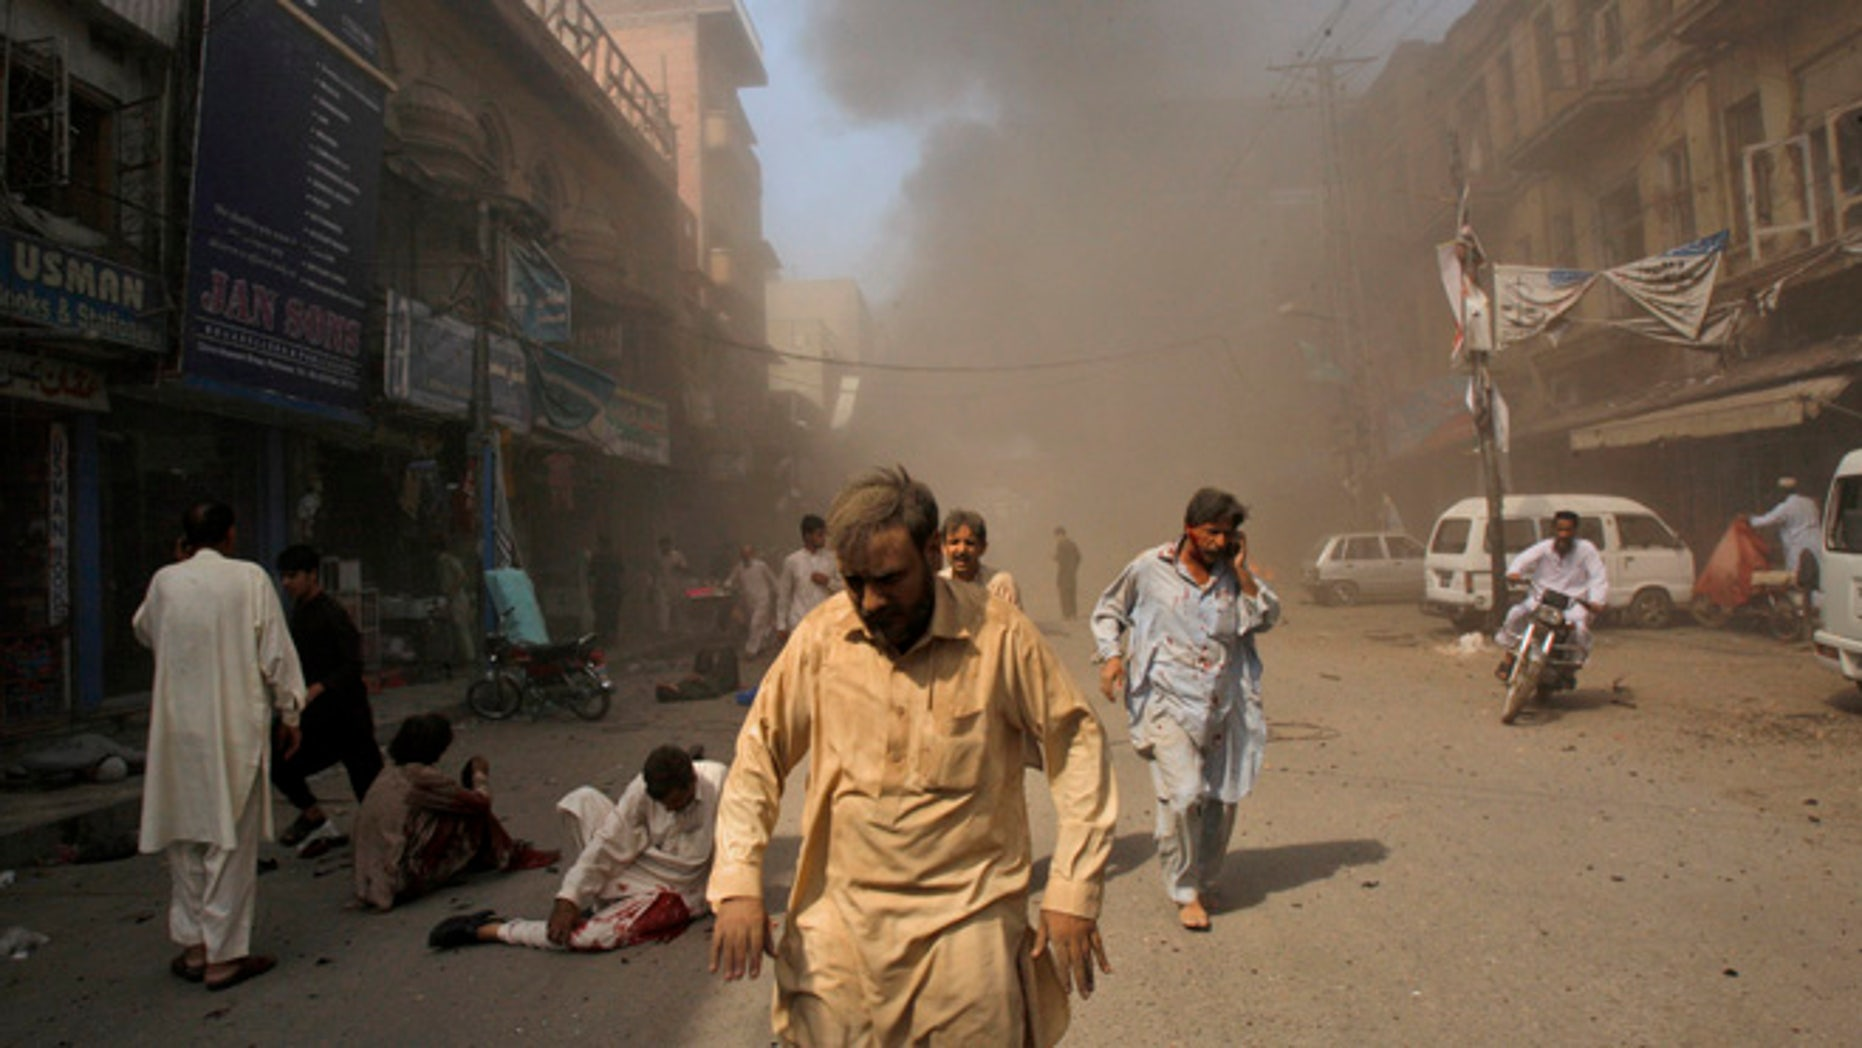 Sept. 29, 2013: Pakistani men rush away from the site of a blast shortly after a car explosion in Peshawar, Pakistan. A car bomb exploded on a crowded street in northwestern Pakistan Sunday, killing scores of people in the third blast to hit the troubled city of Peshawar in a week, officials said.